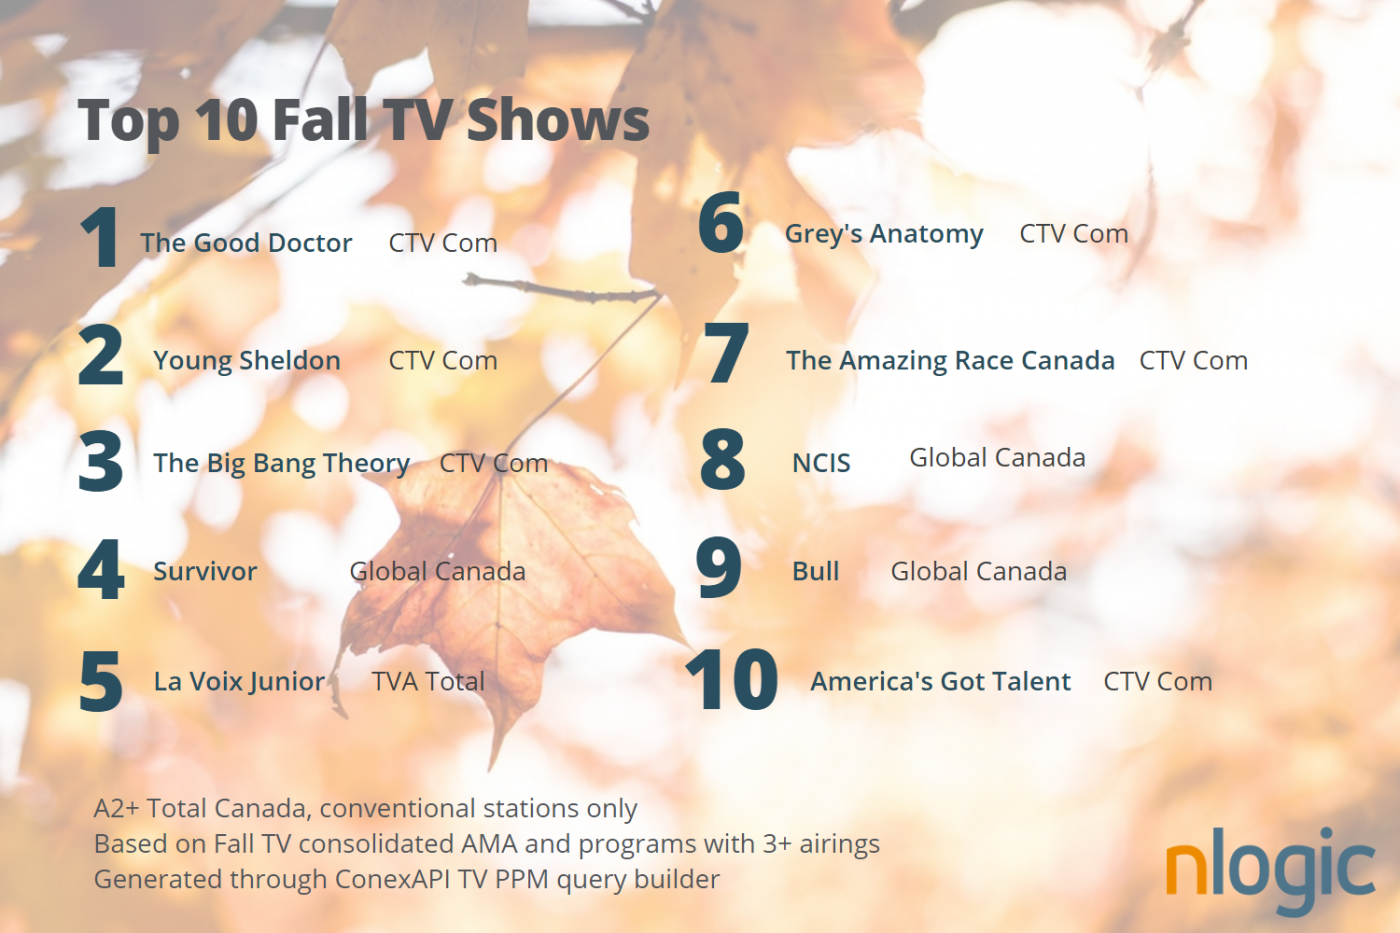 Top TV shows Fall 2017